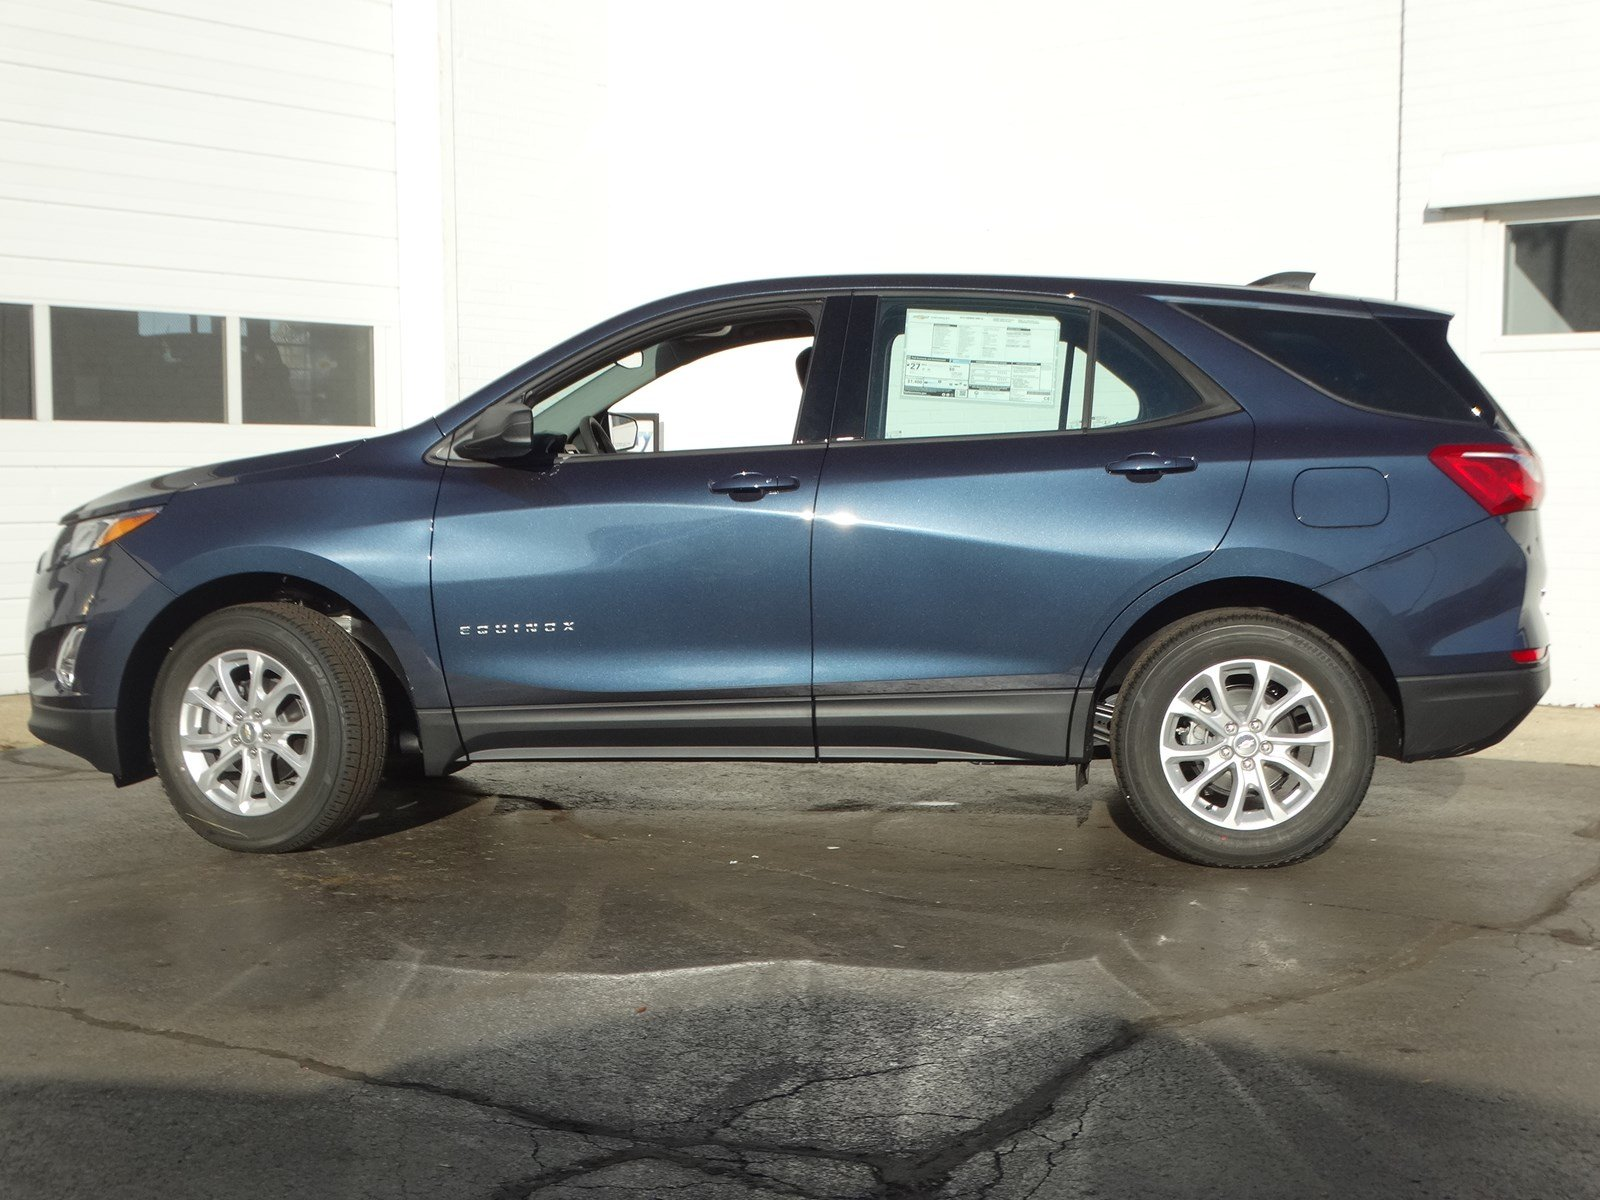 New 2019 Chevrolet Equinox LS 4DR SUV in Glen Ellyn